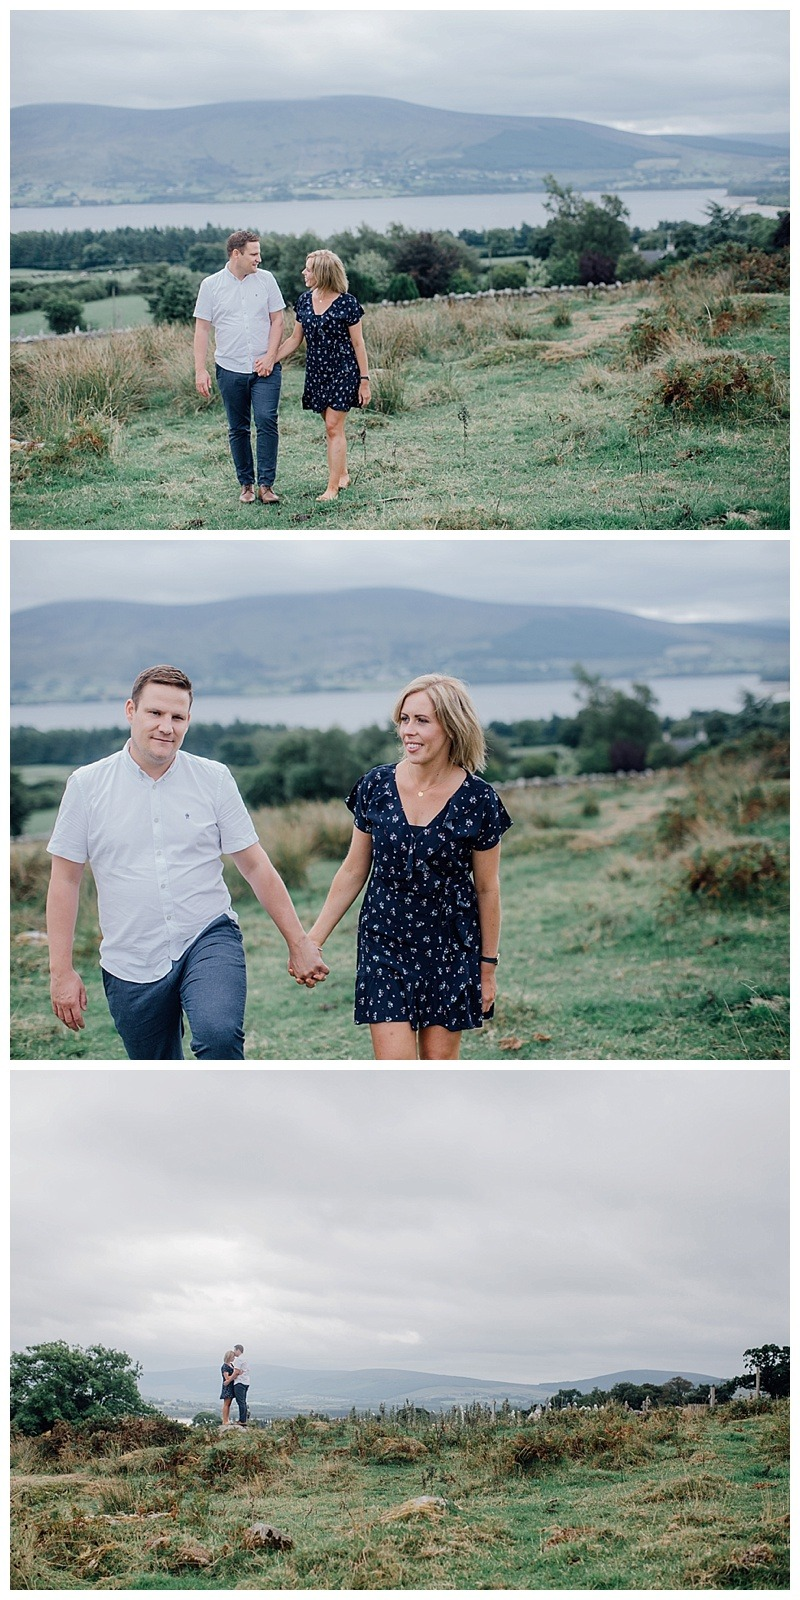 wicklow-engagement-photograph-session-wicklow-mountains-blessington-lakes